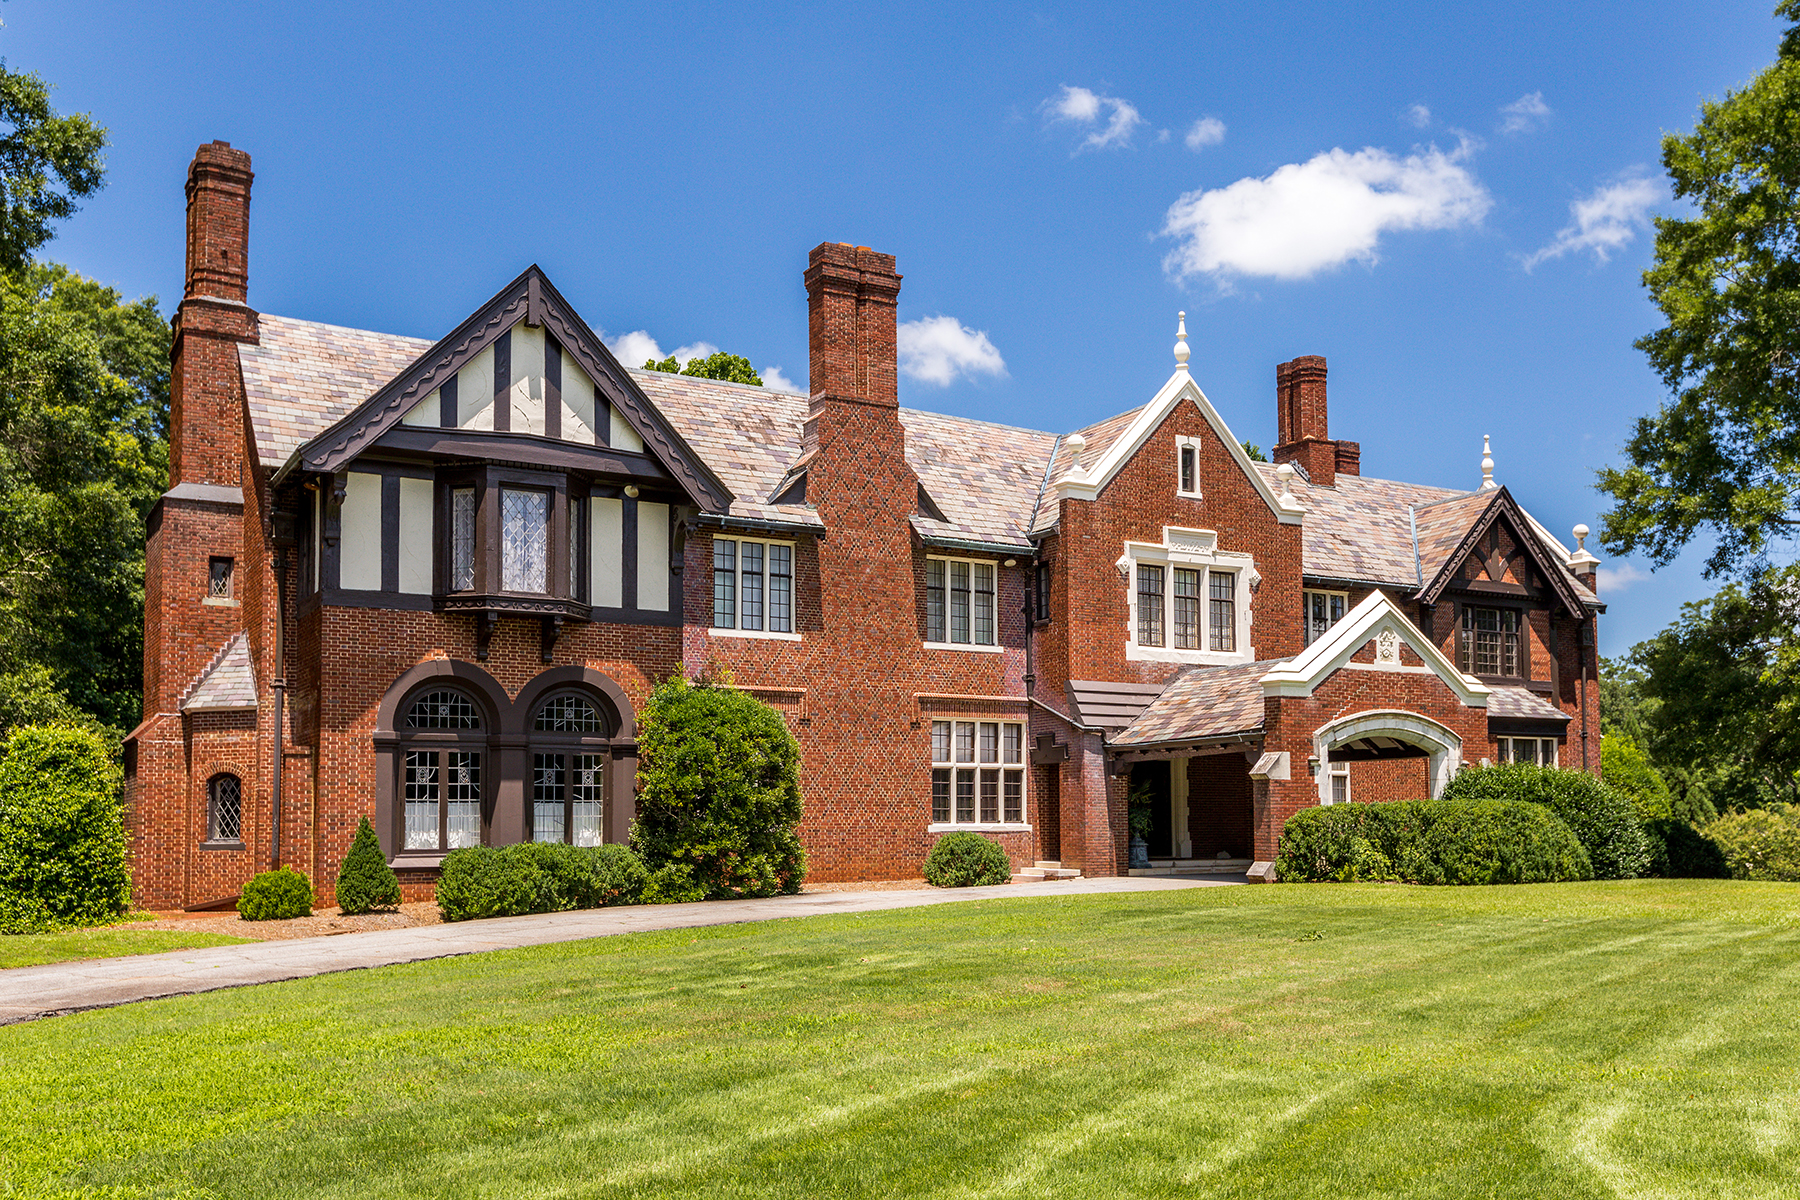 Single Family Home for Sale at Iconic Tudor Mansion 218 Jackson Street Newnan, Georgia 30263 United States